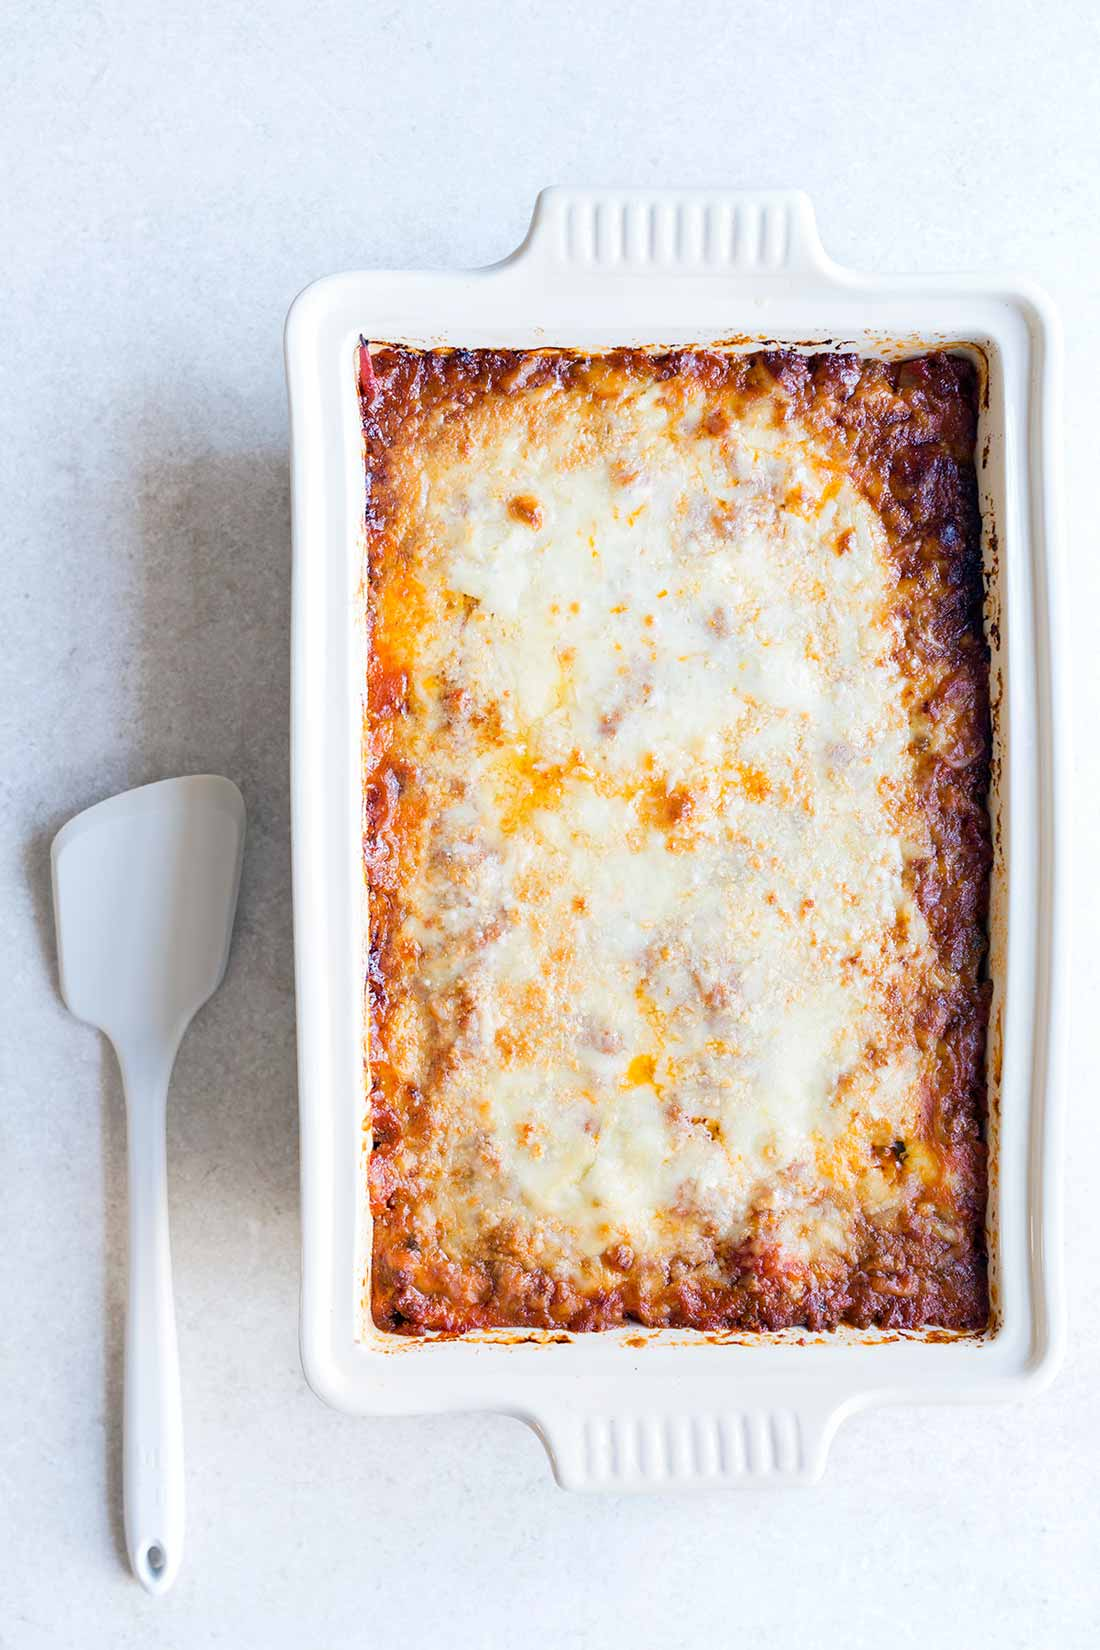 A photo of zucchini lasagna in a casserole dish on a pale backdrop.